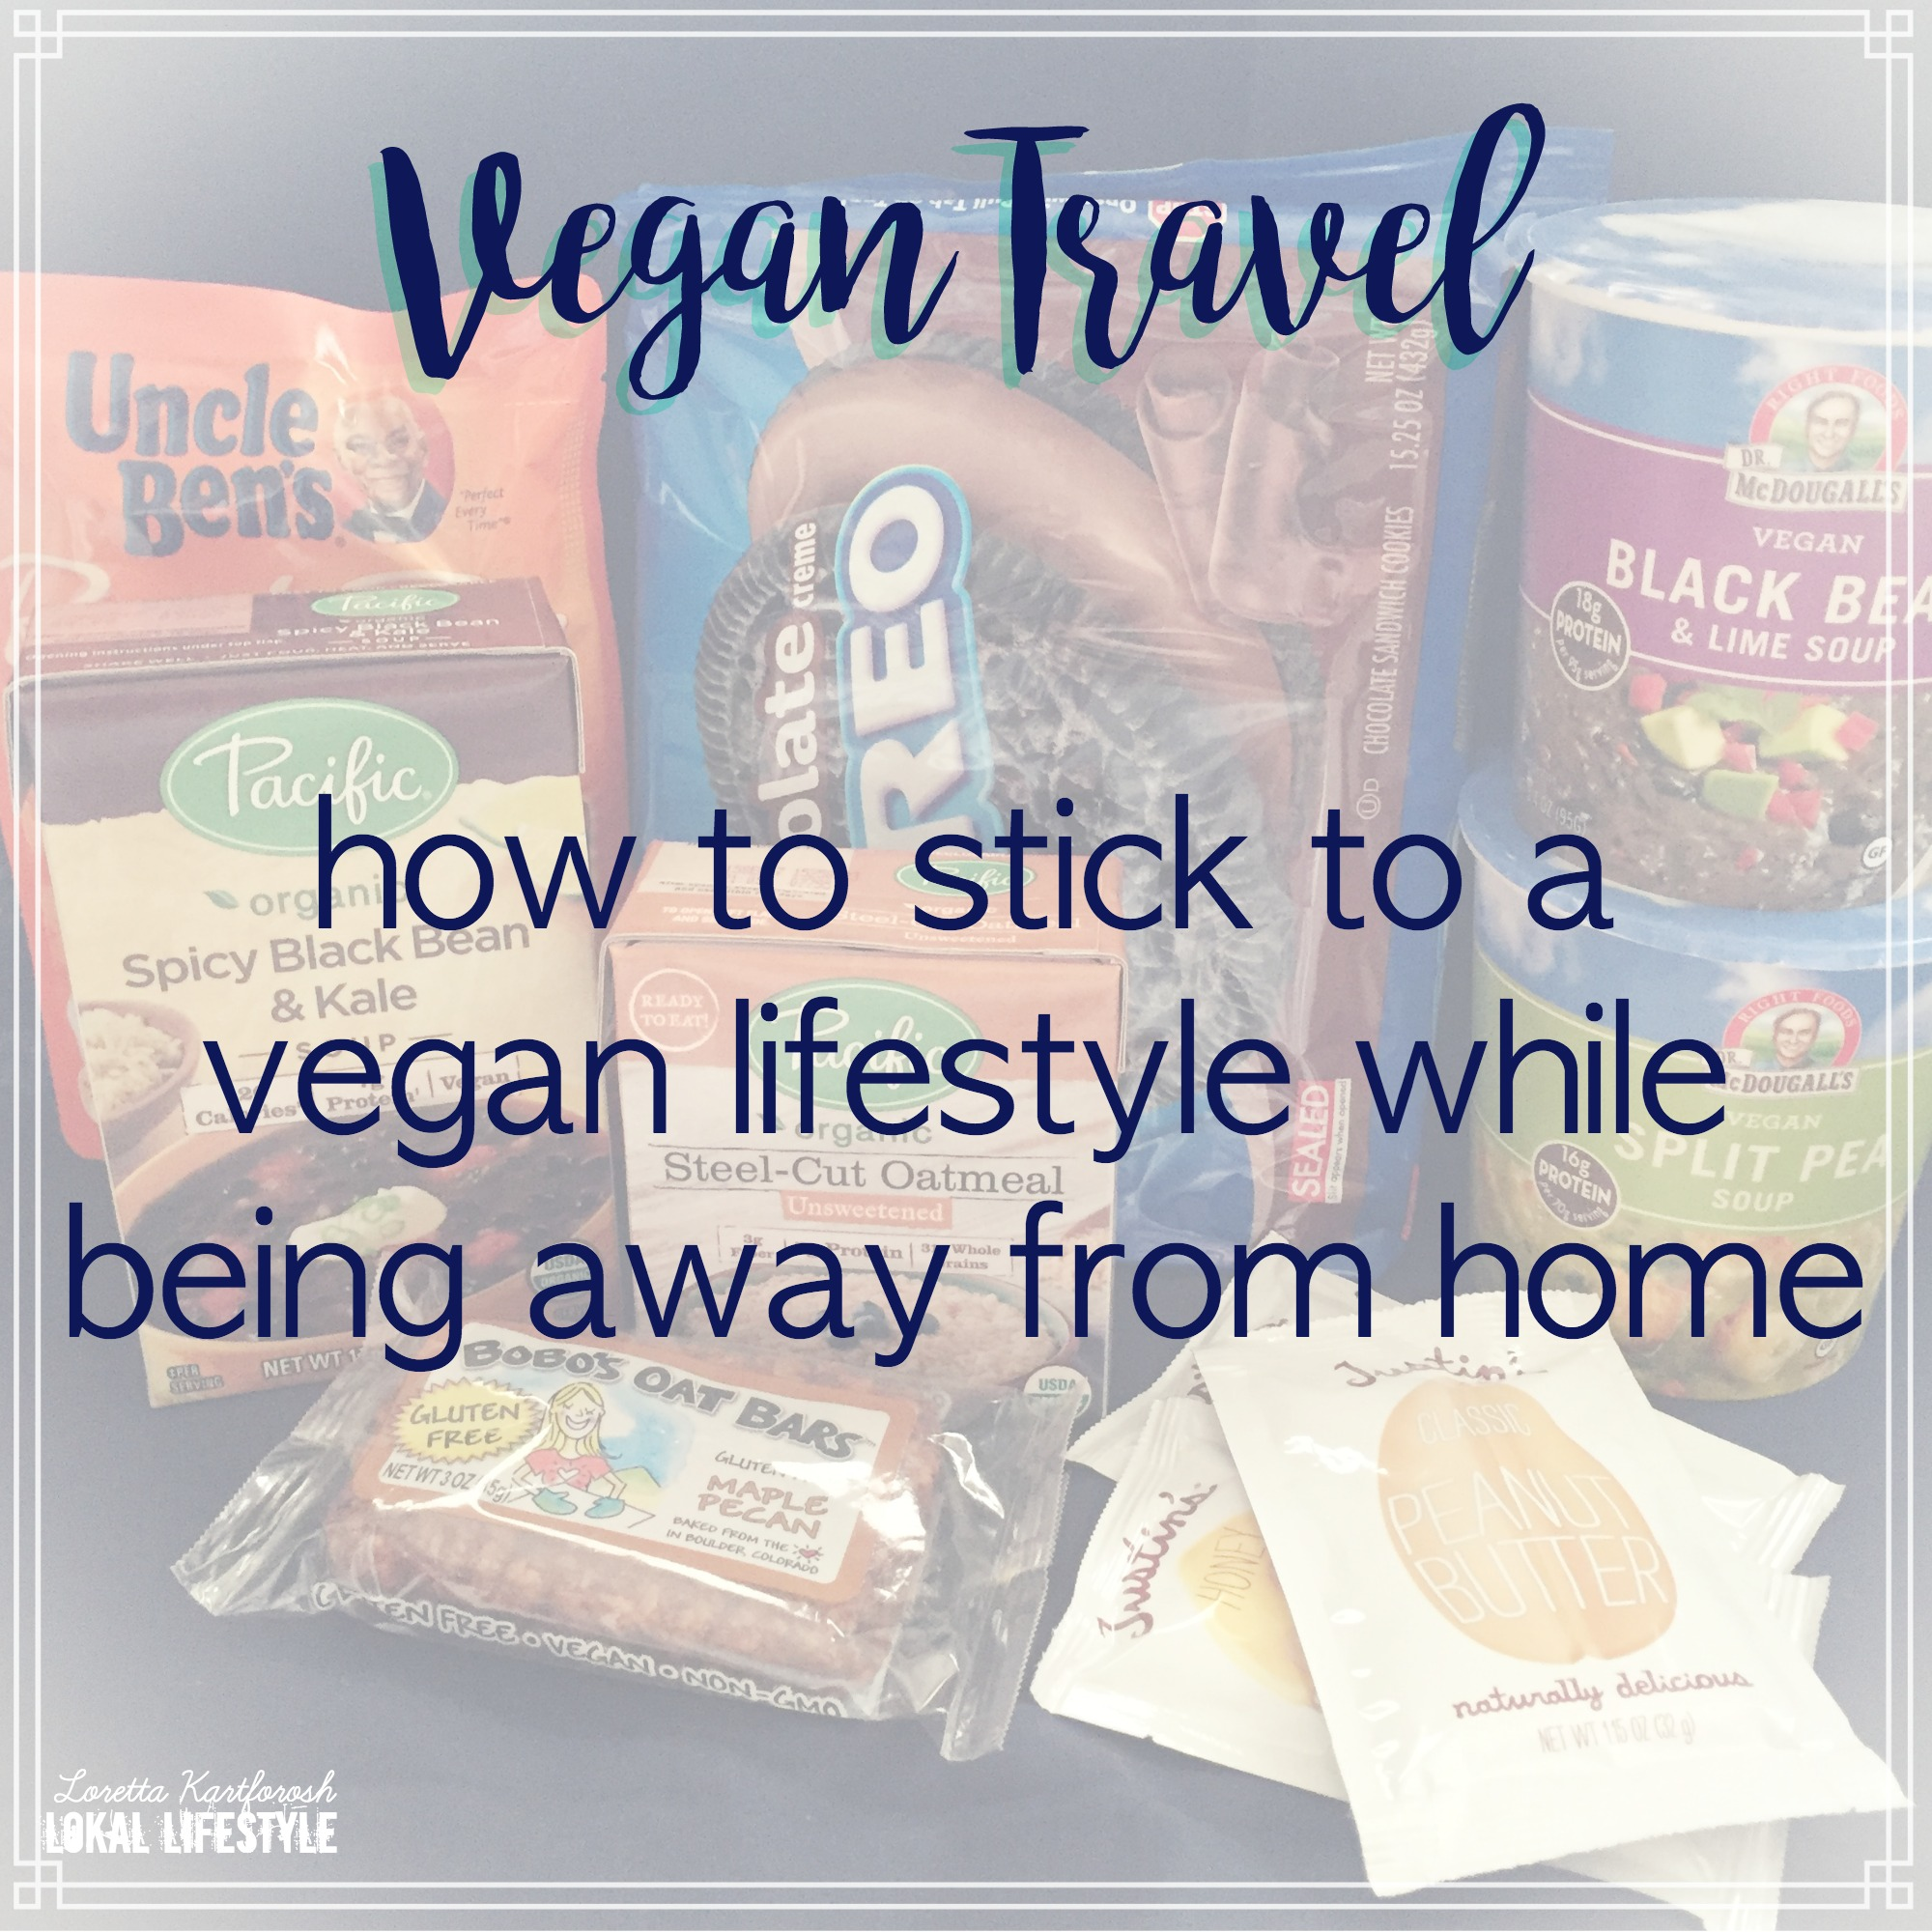 How to stick to a vegan lifestyle while being away from home